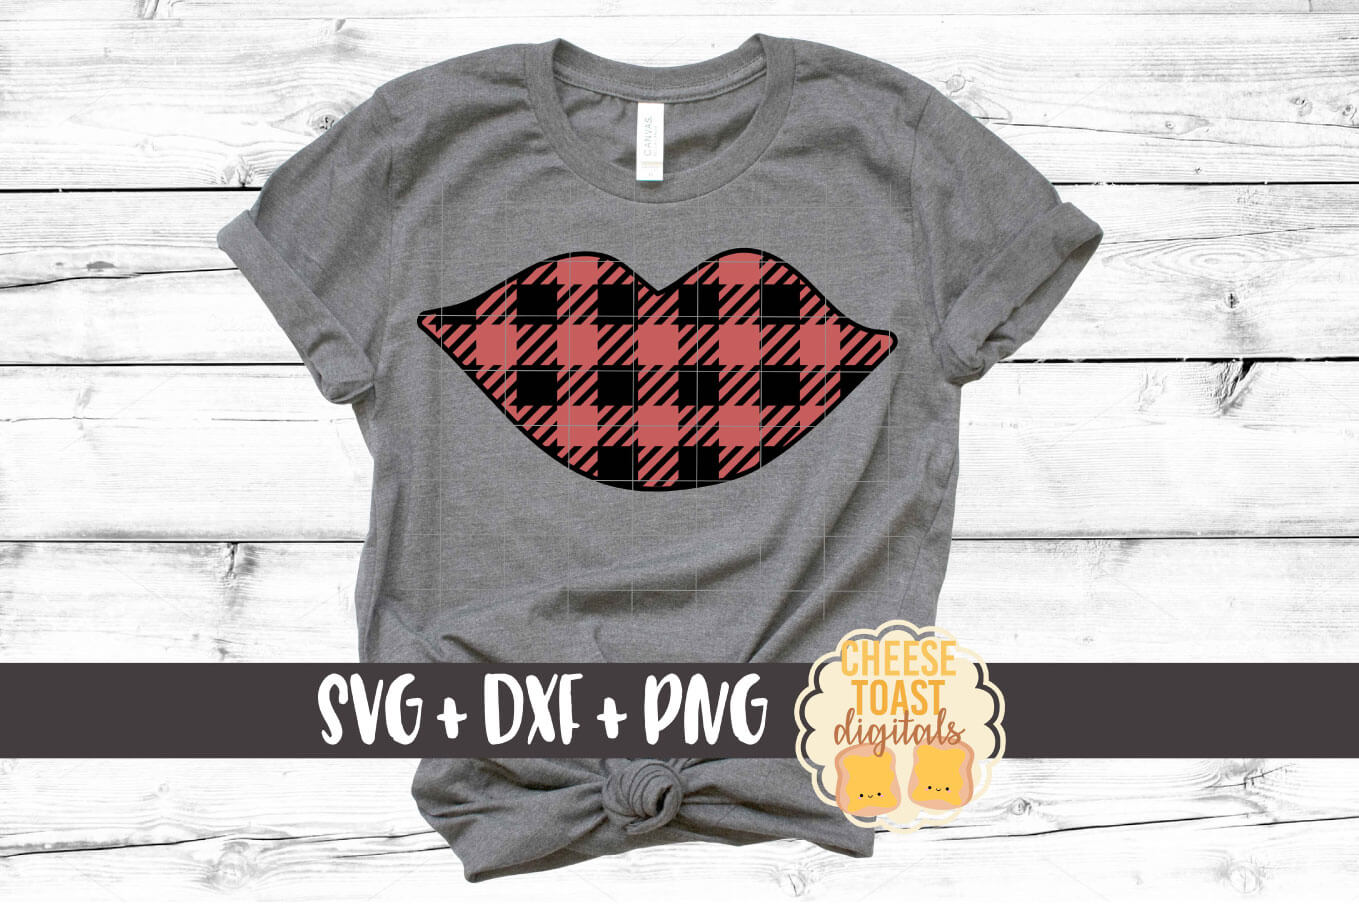 Download Free Buffalo Plaid Lips Graphic By Cheesetoastdigitals Creative Fabrica for Cricut Explore, Silhouette and other cutting machines.